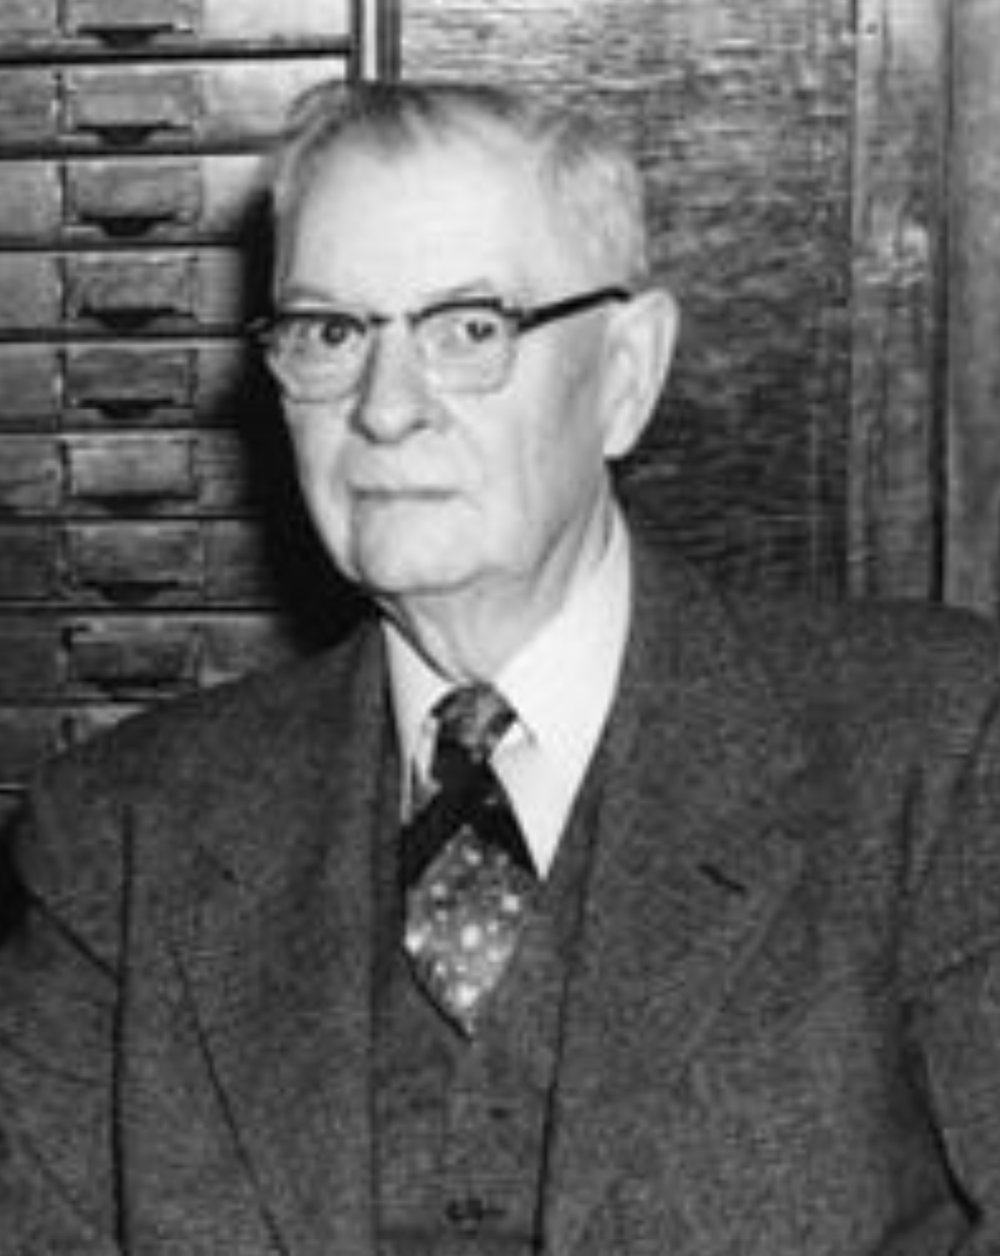 JUDGE RALPH B. RALSTON